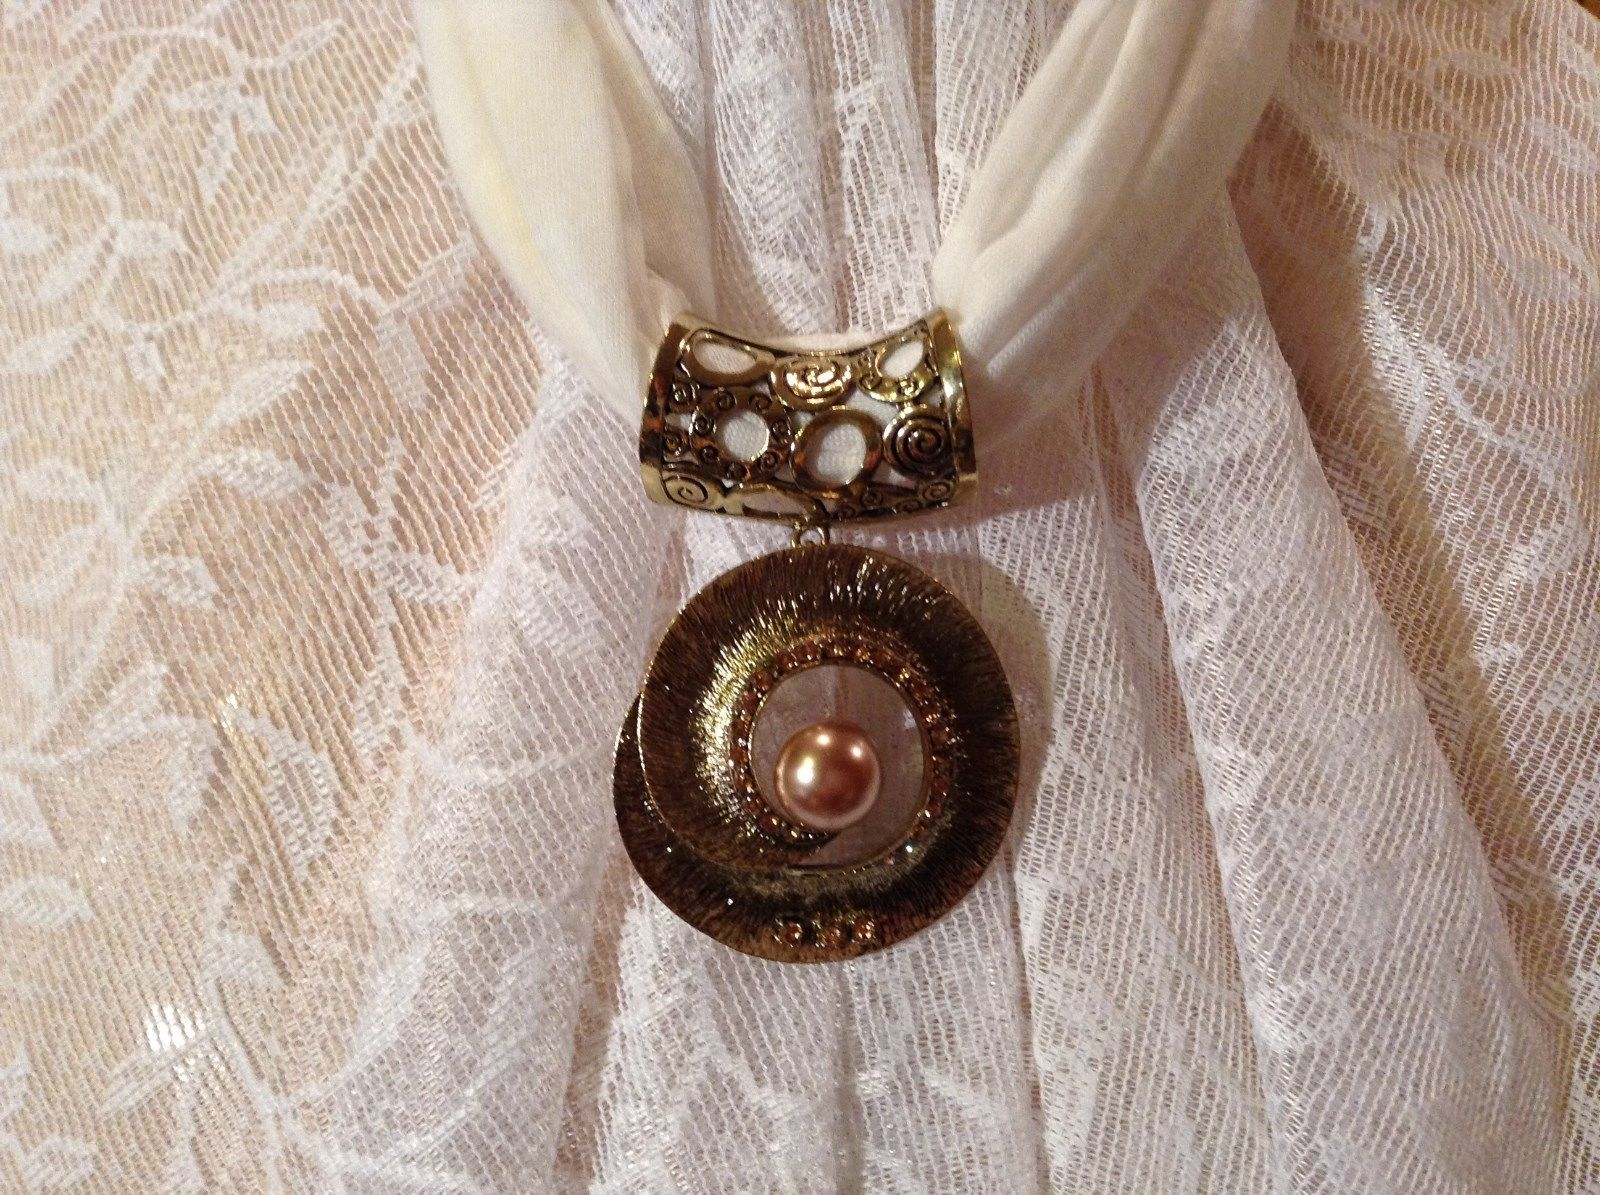 Gold Tone Spiral Circular Shaped Scarf Pendant with Large Brown Bead in Center